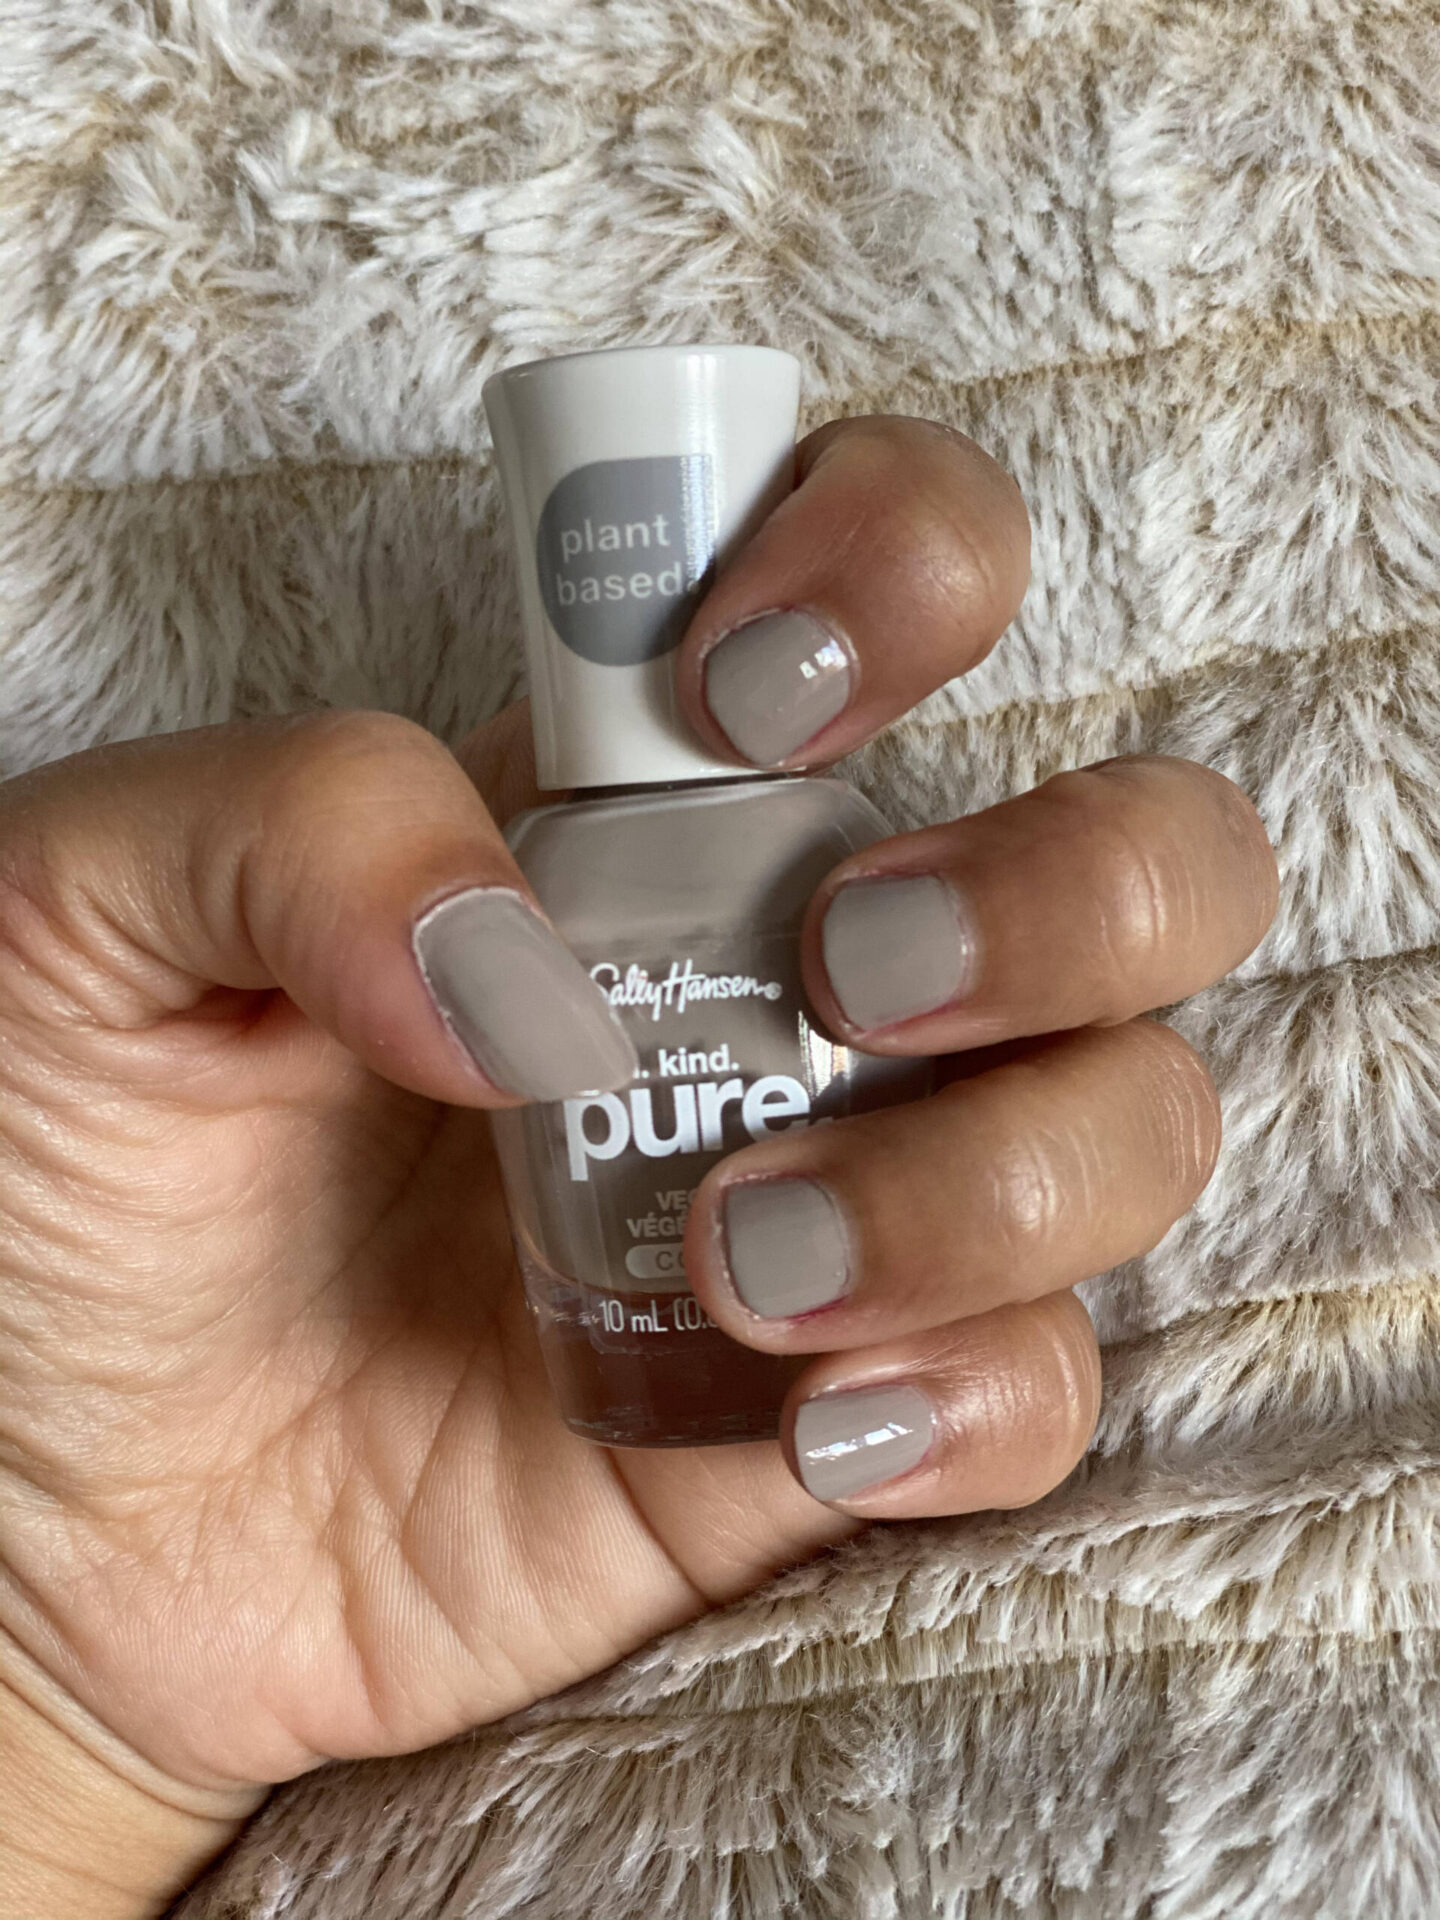 Vegan nail polish 'good, kind & pure' from Sally Hansen